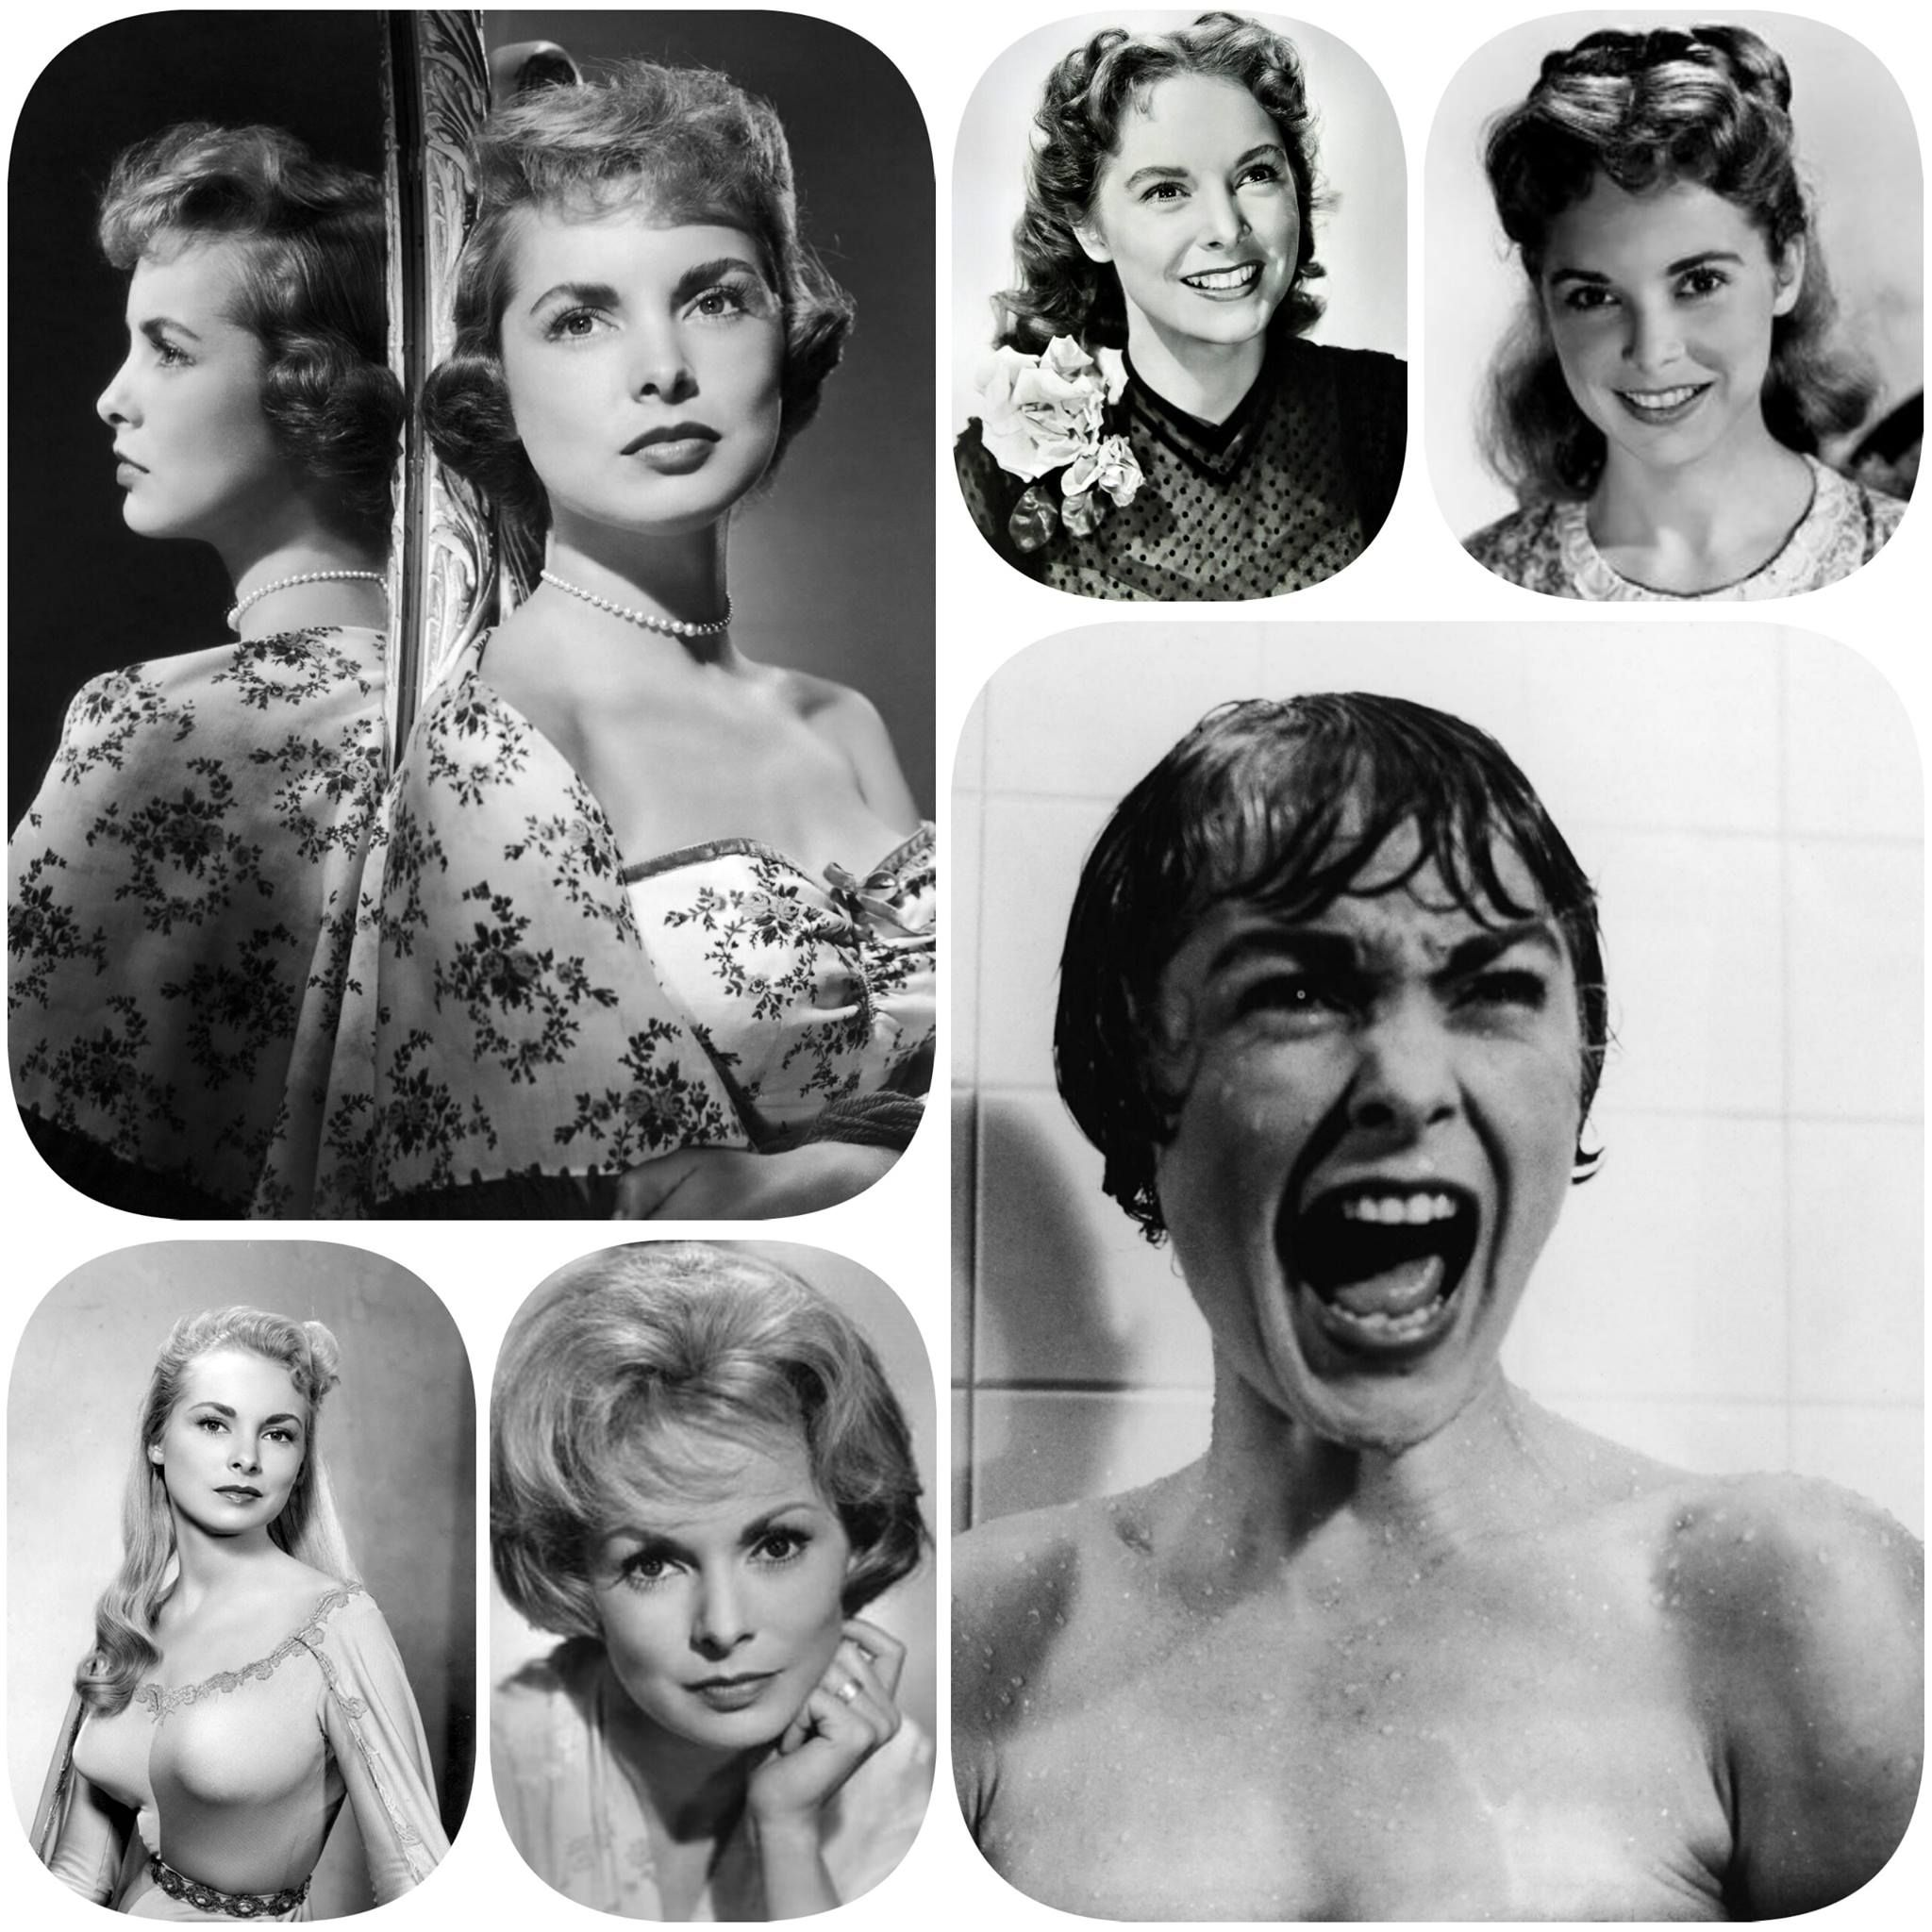 Janet Leigh born July 6, 1927 Died October 3, 2004